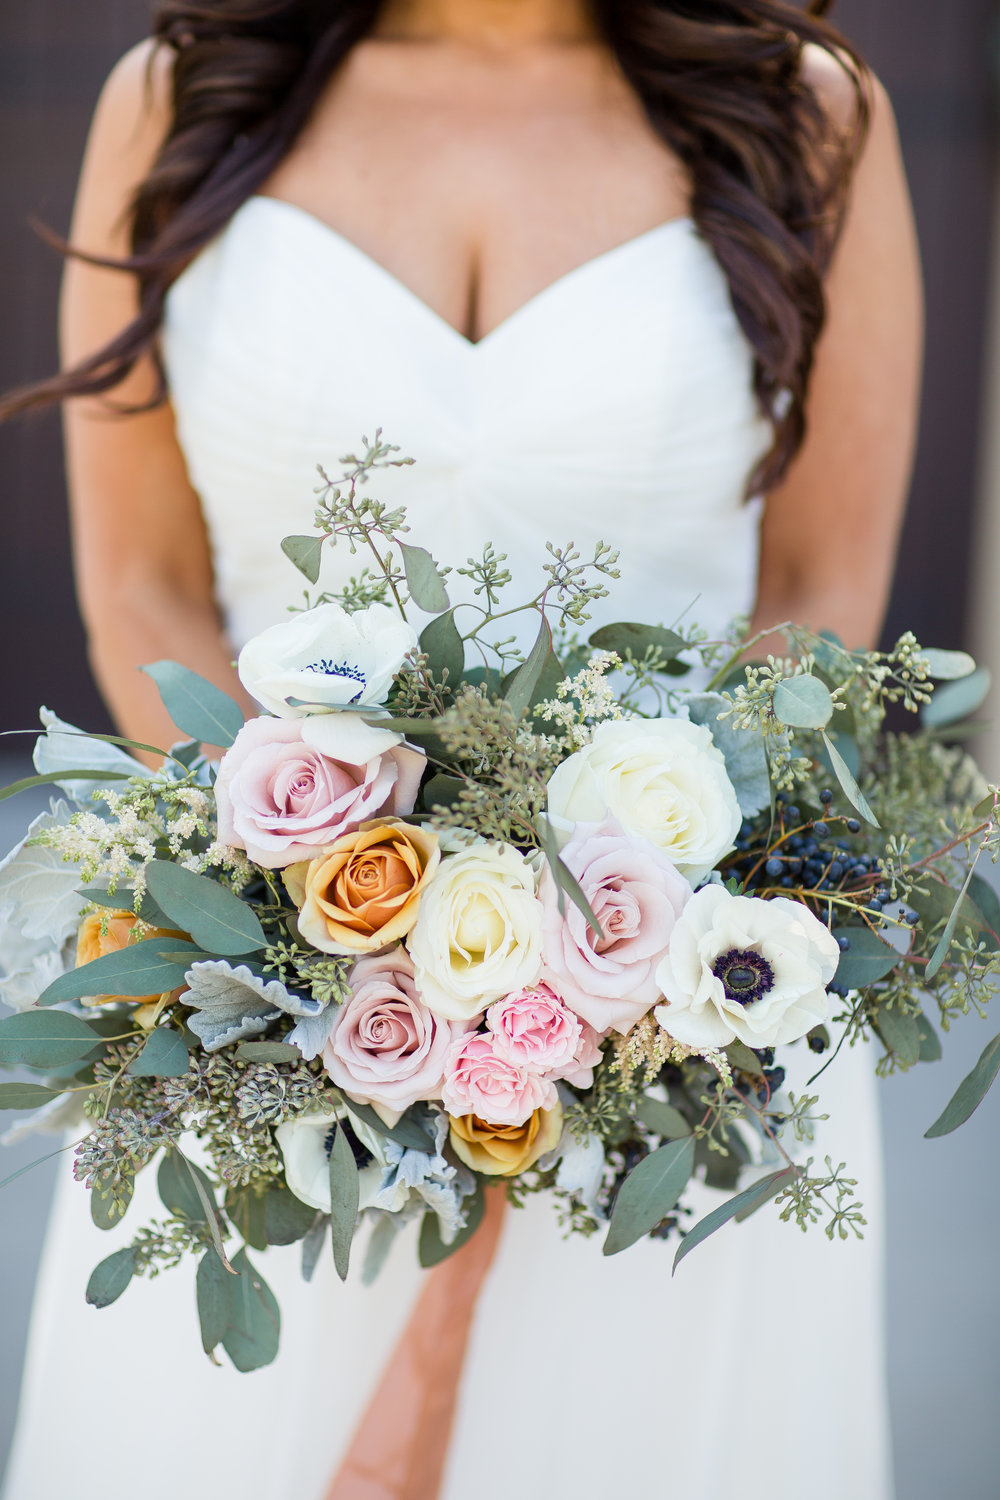 www.santabarbarawedding.com | Los Robles Greens | Events by Fran | Chelsea Elizabeth | Bridal Bouquet